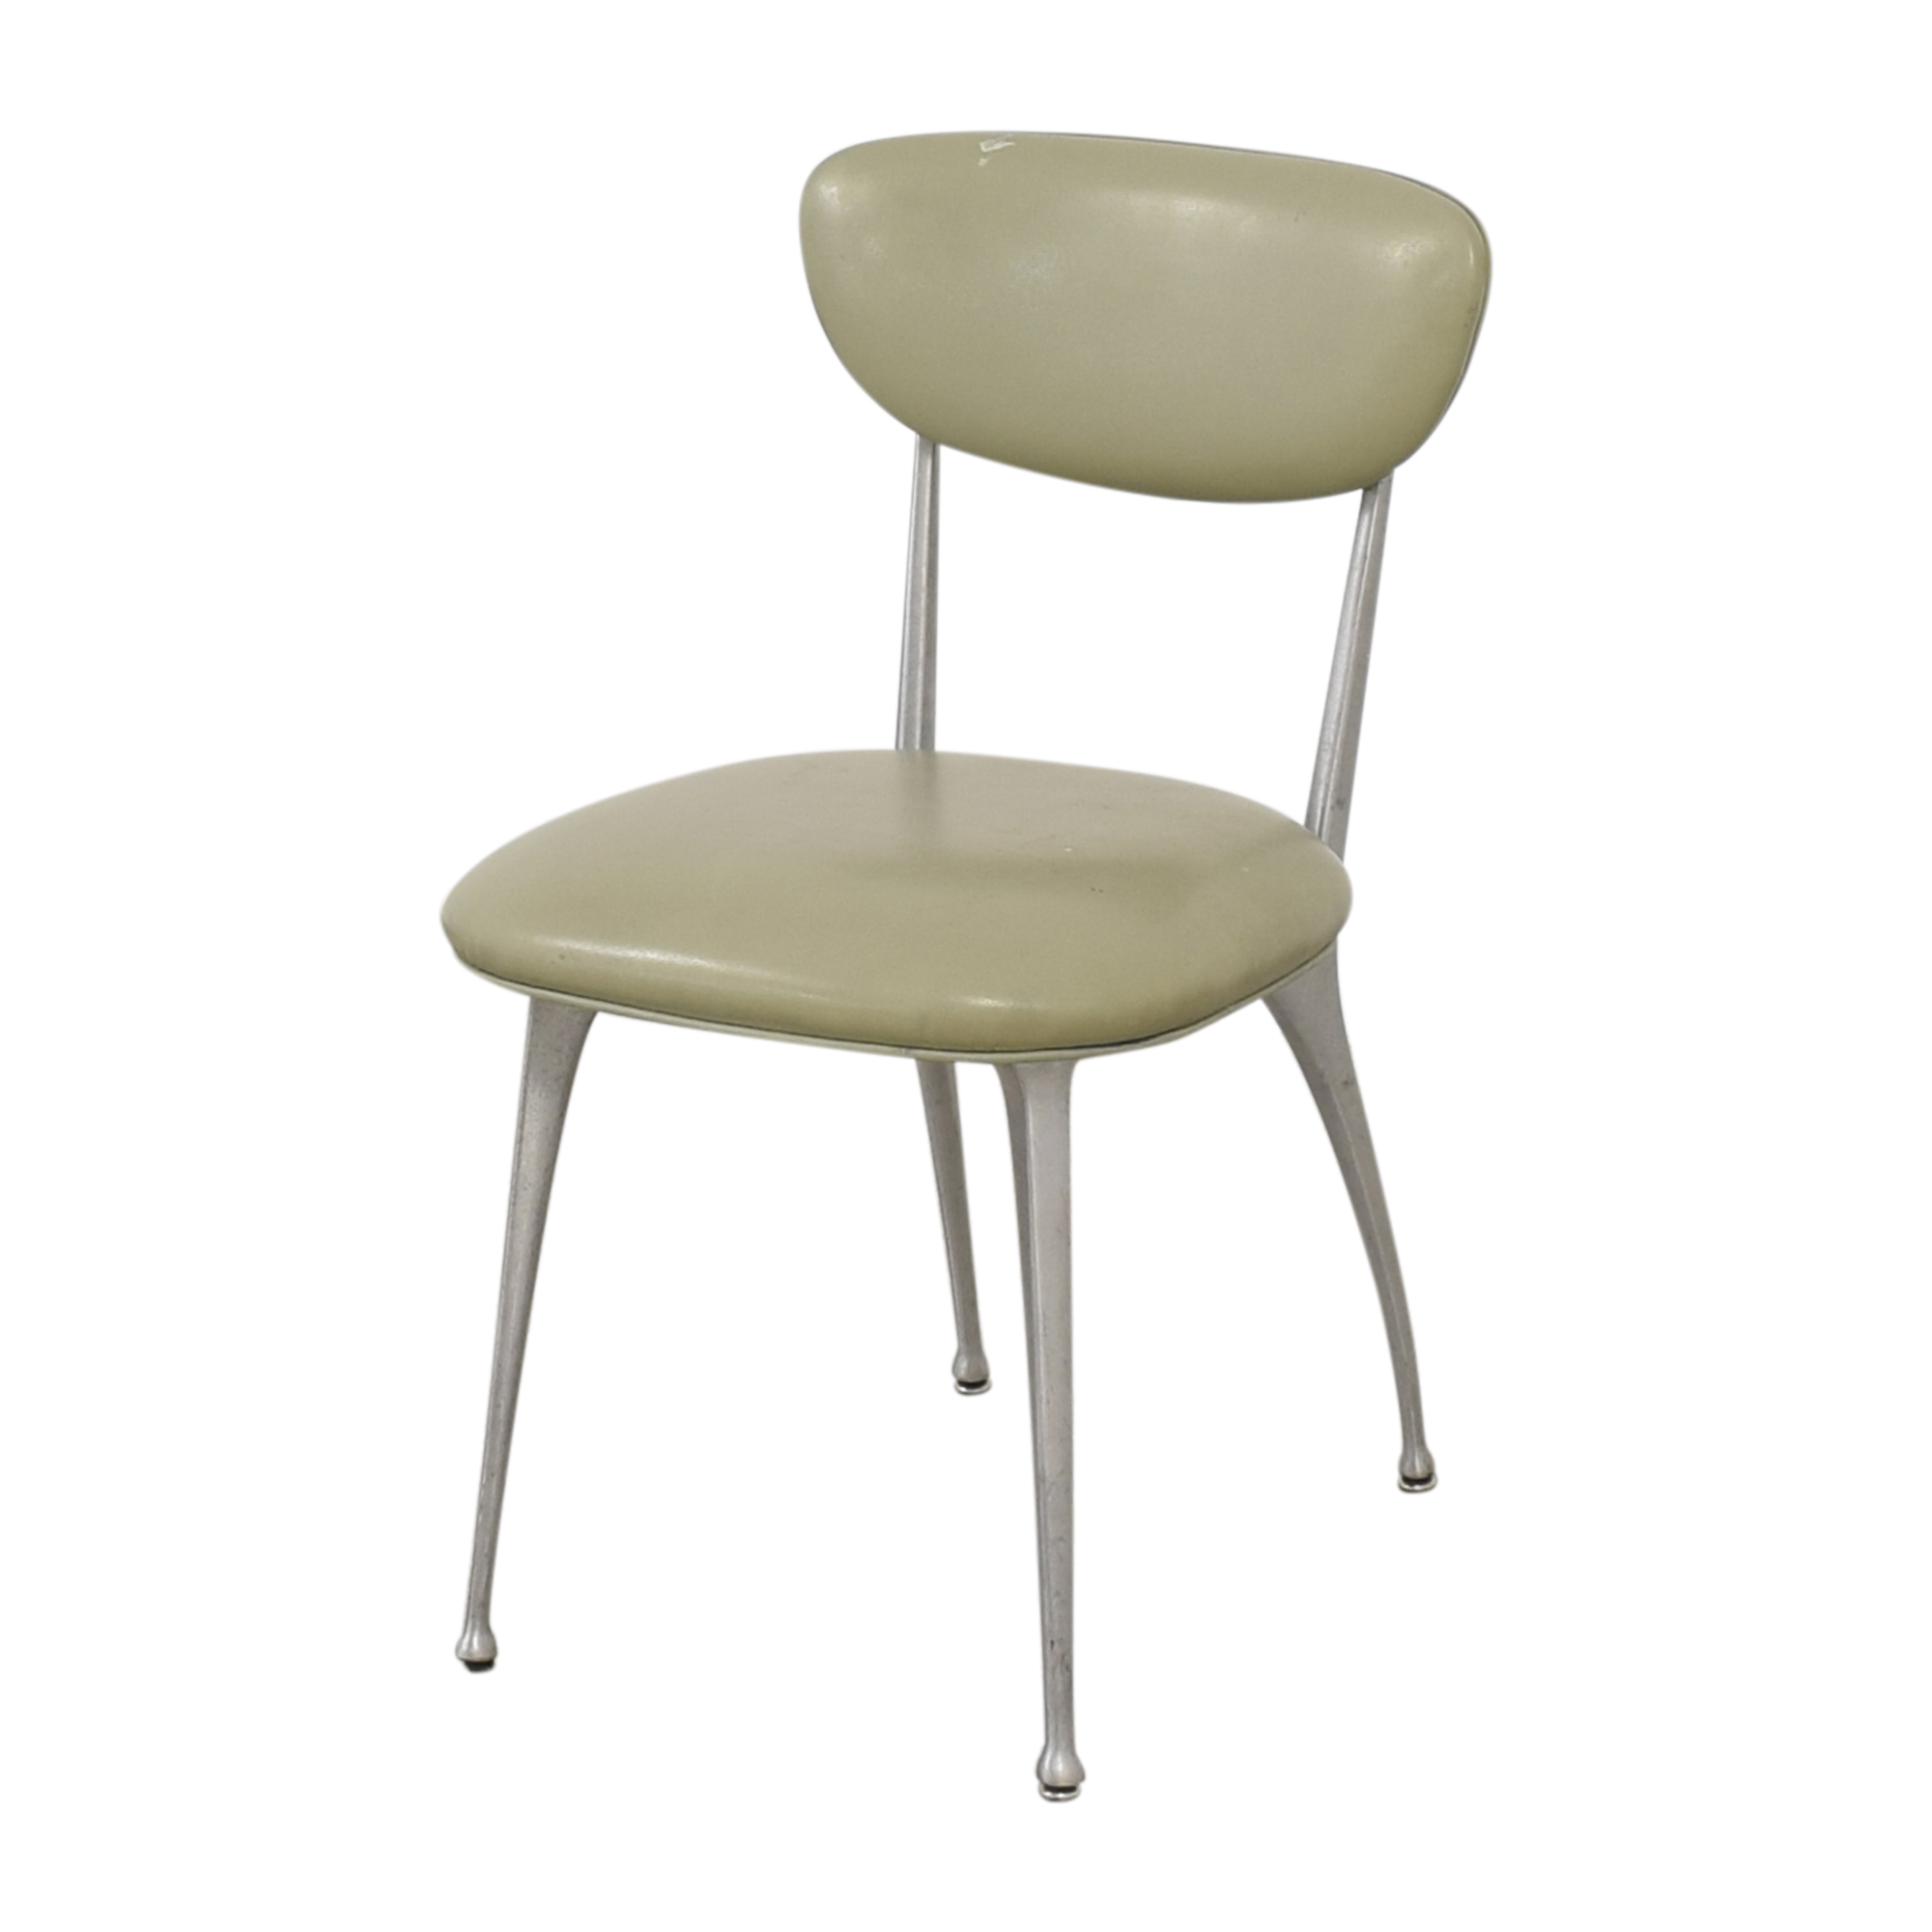 Modernica Modernica Vintage Dining Chairs pa